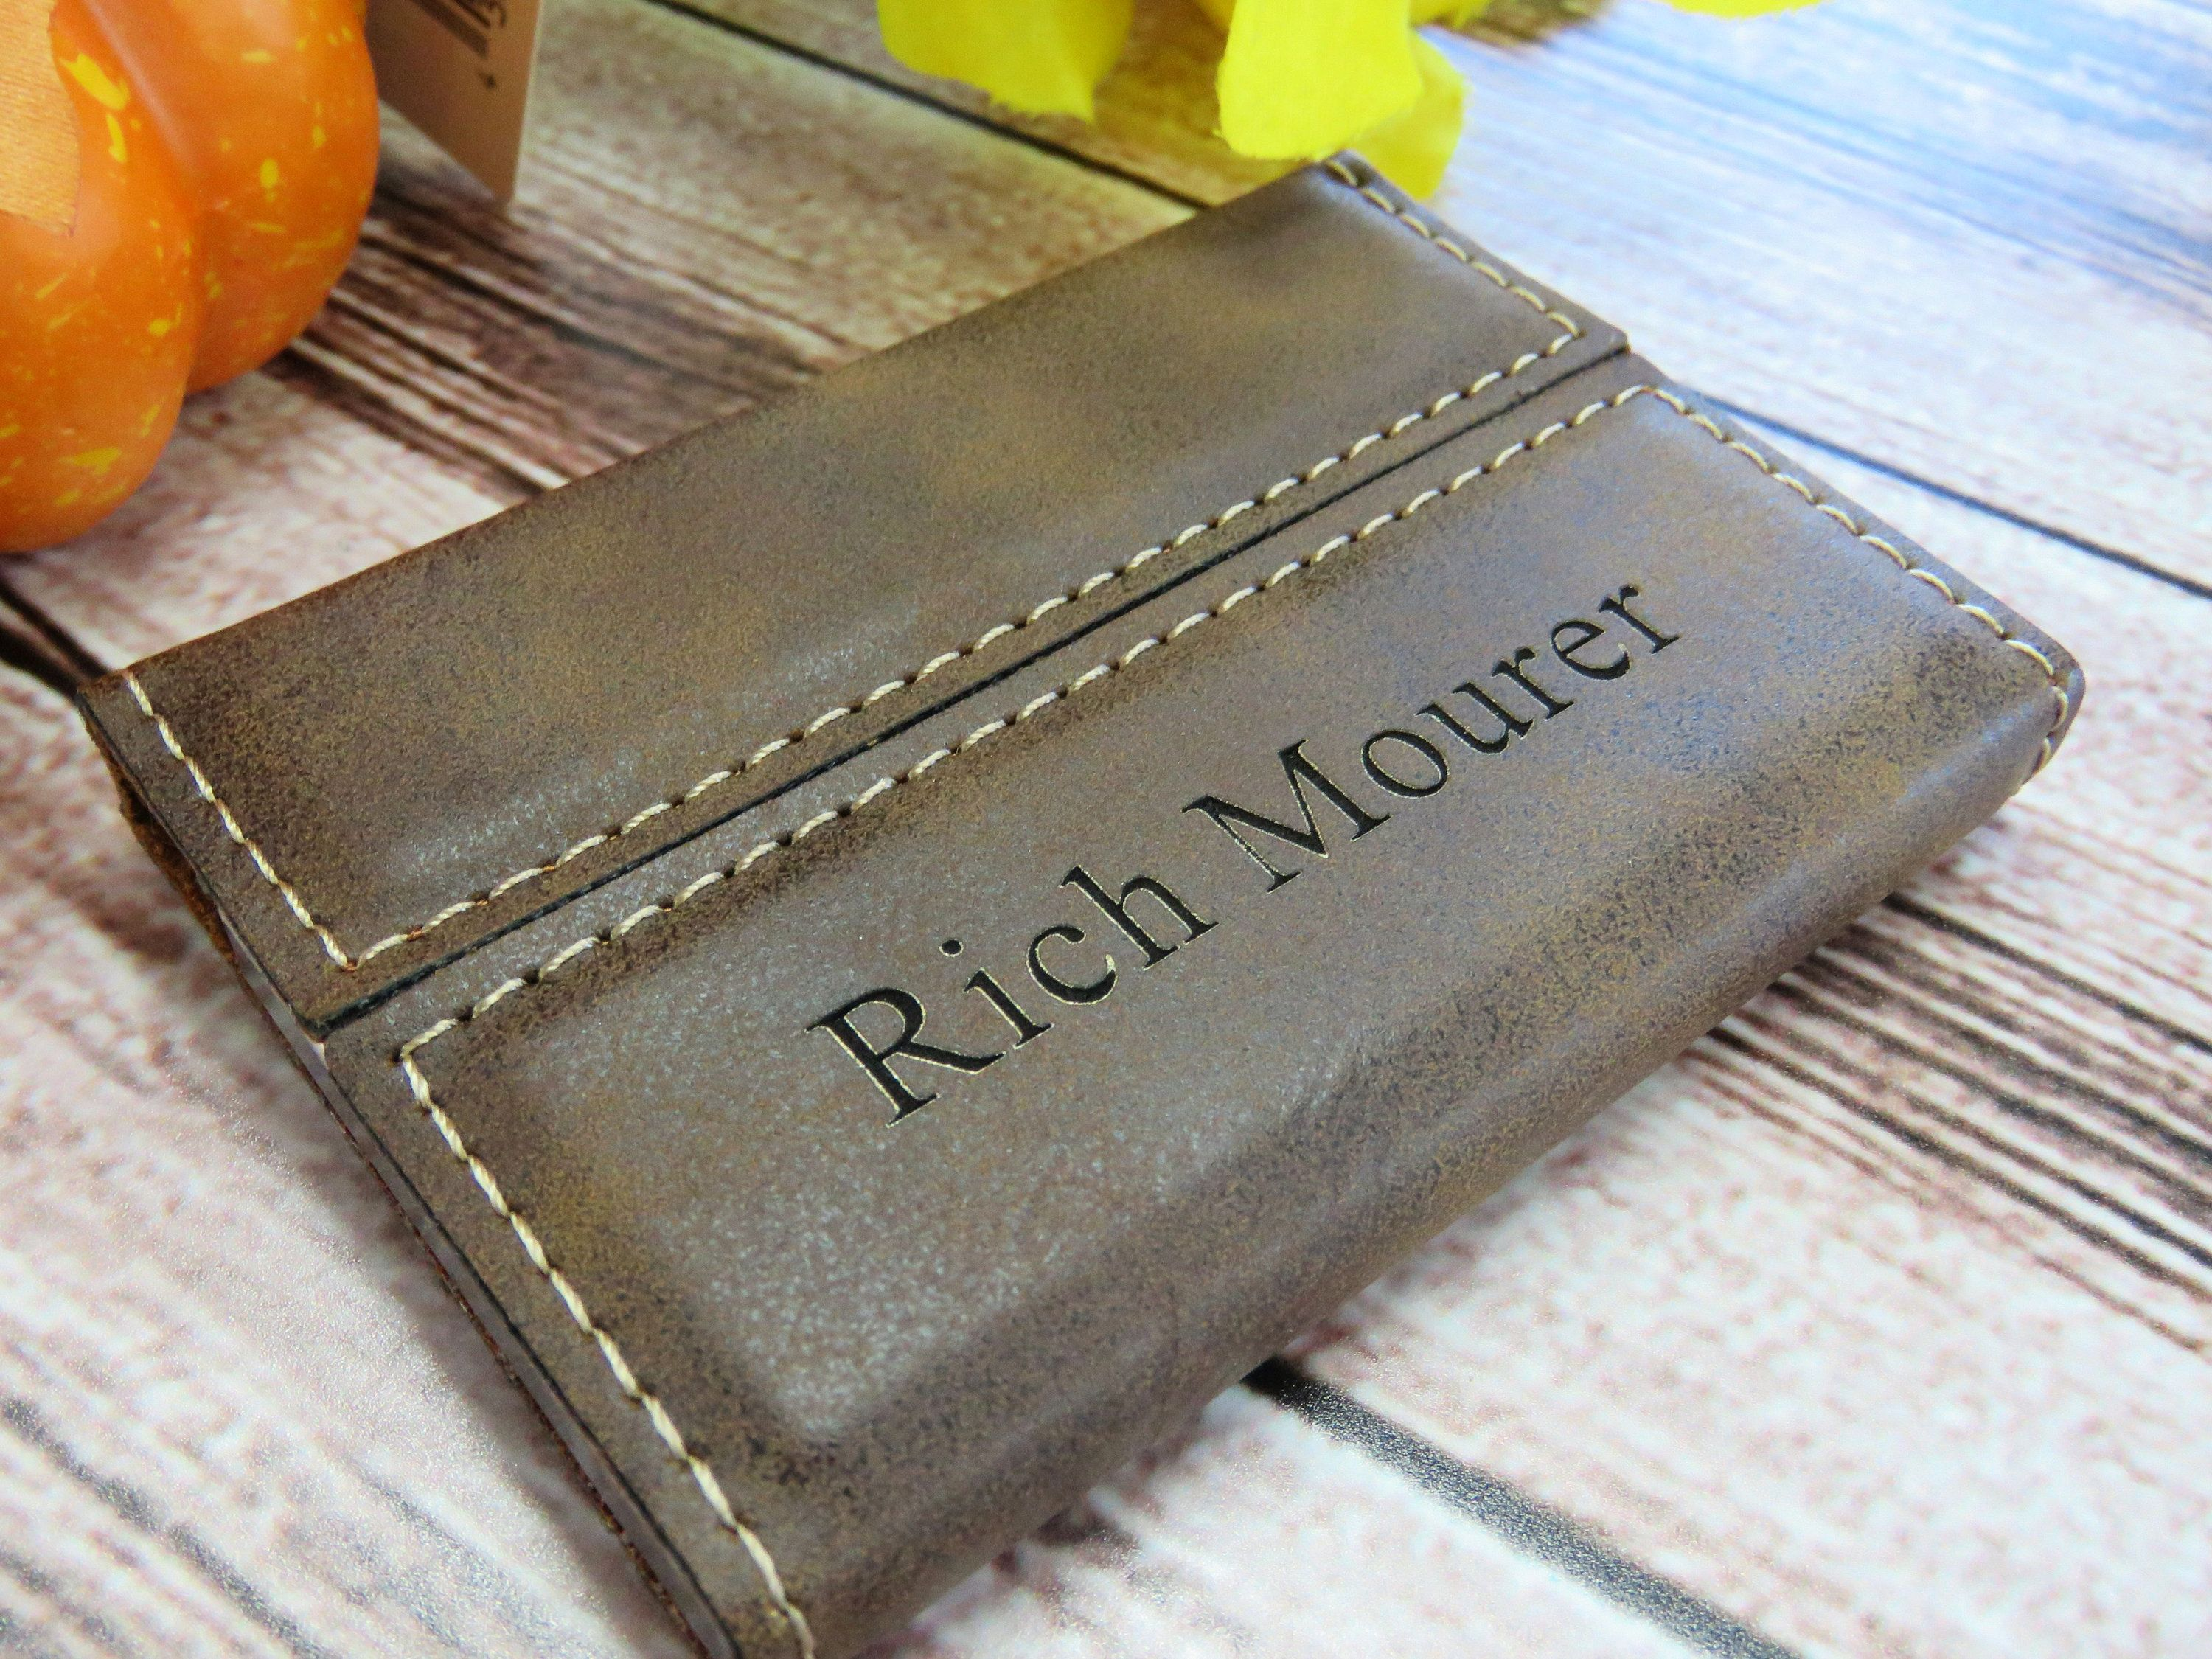 Custom Engraved Leather Business Card Holder Personalized Card Case Corporate Gifts Boss Gift Leather Business Cards Leather Business Card Holder Job Gifts